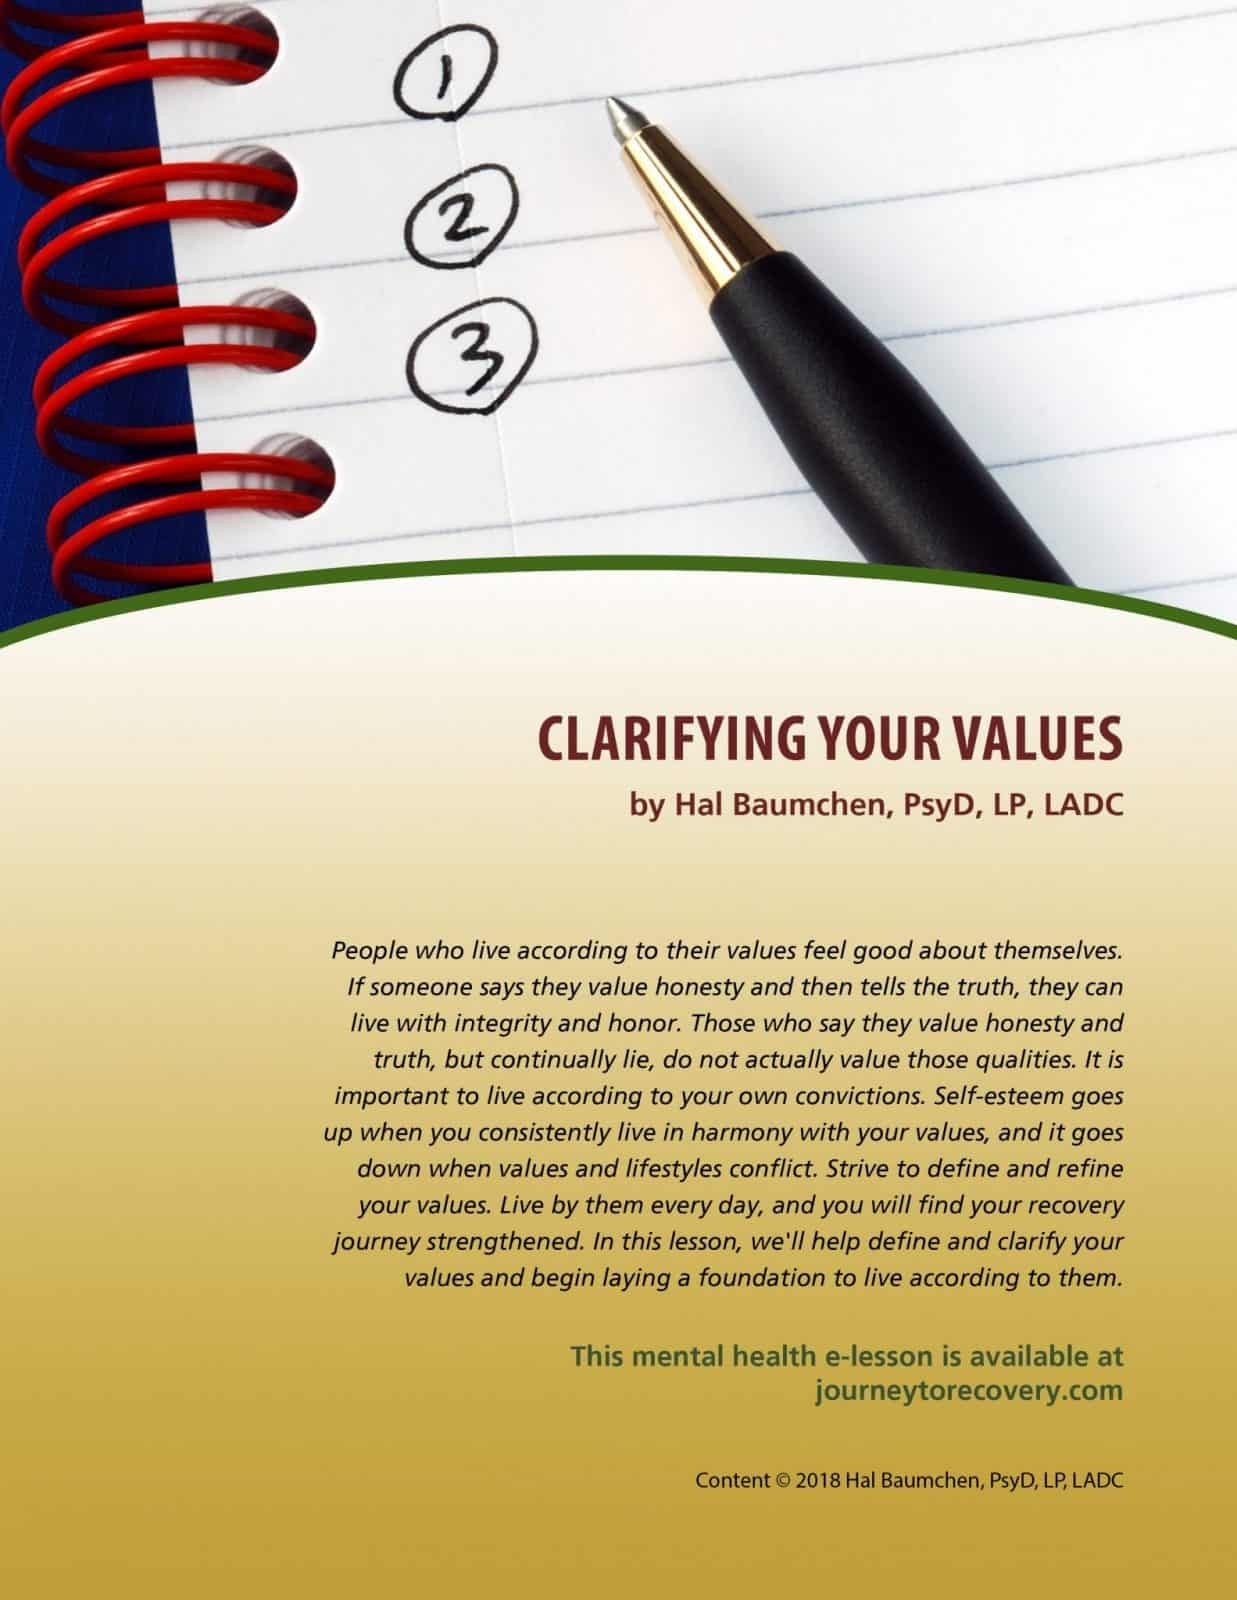 Clarifying Your Values Mh Lesson